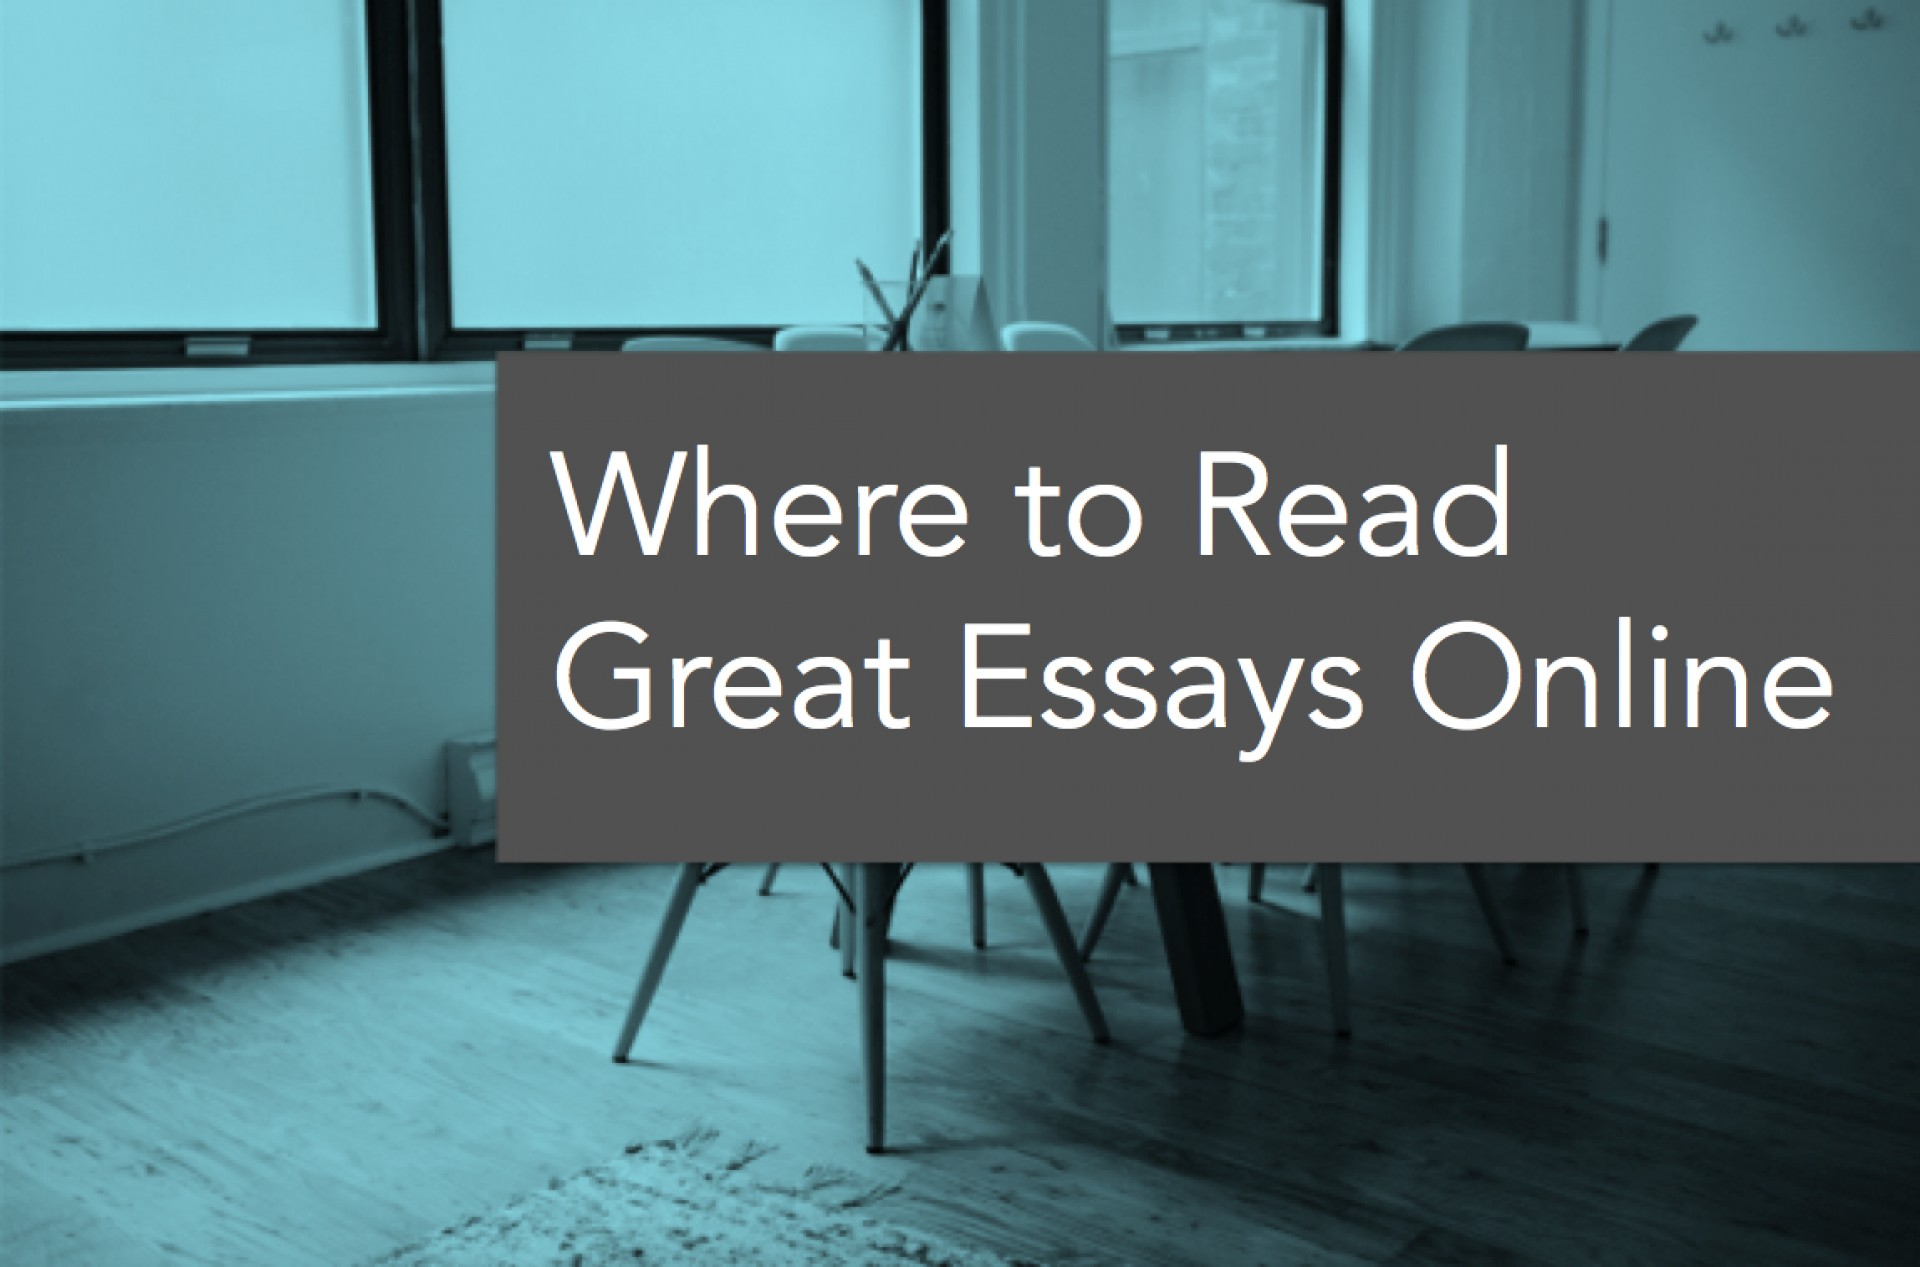 001 Wheretoread Essays Online To Read Essay Remarkable Free Best 1920